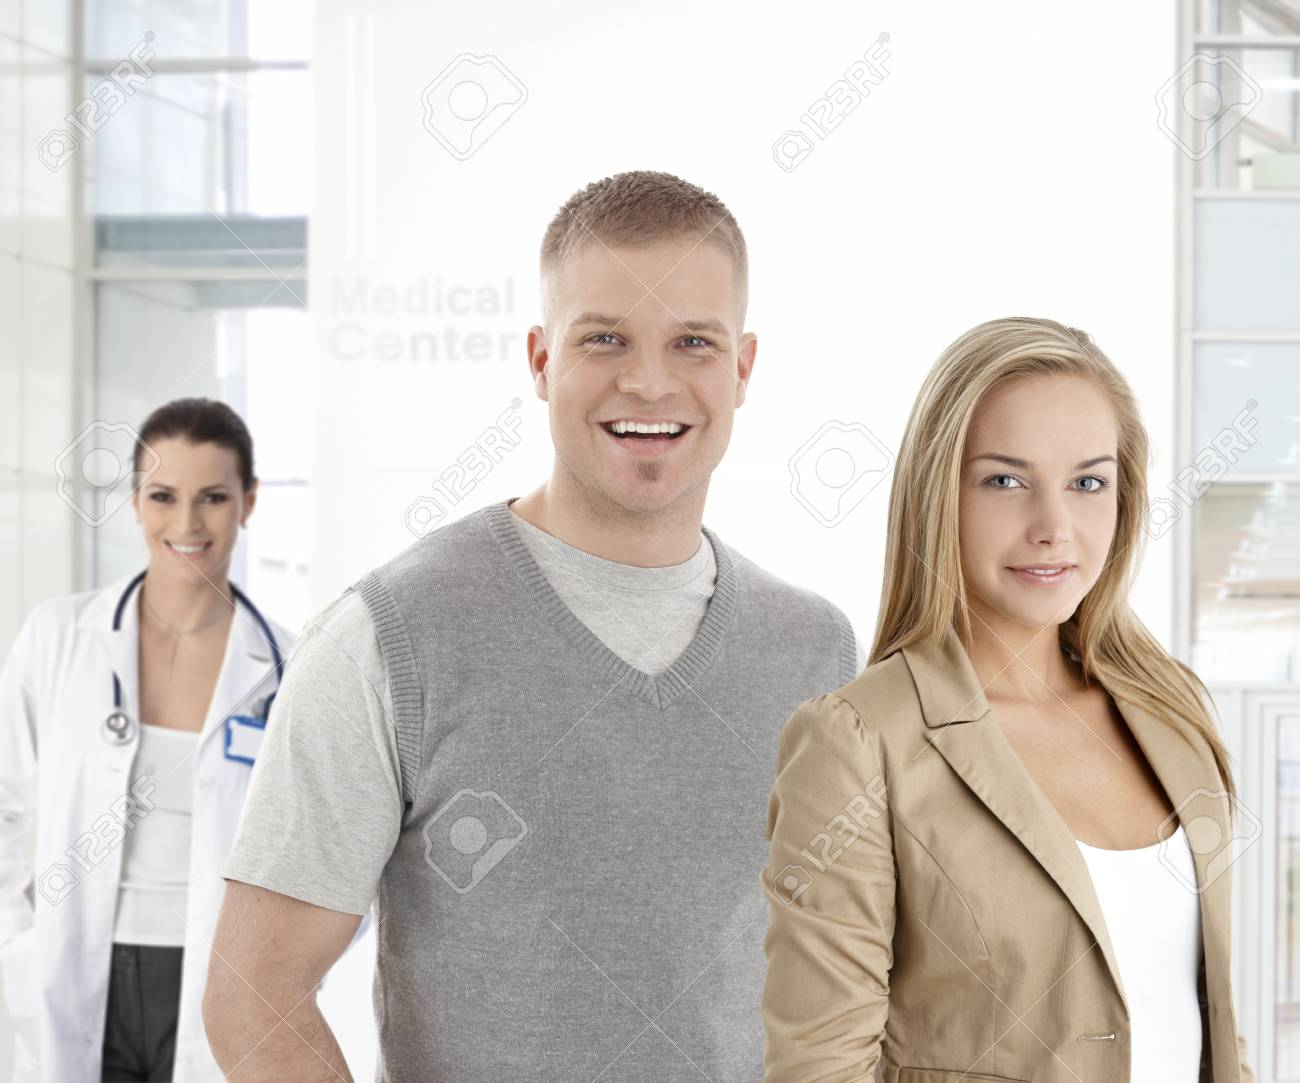 Young couple standing at medical center, smiling, looking at camera. Stock Photo - 22854282